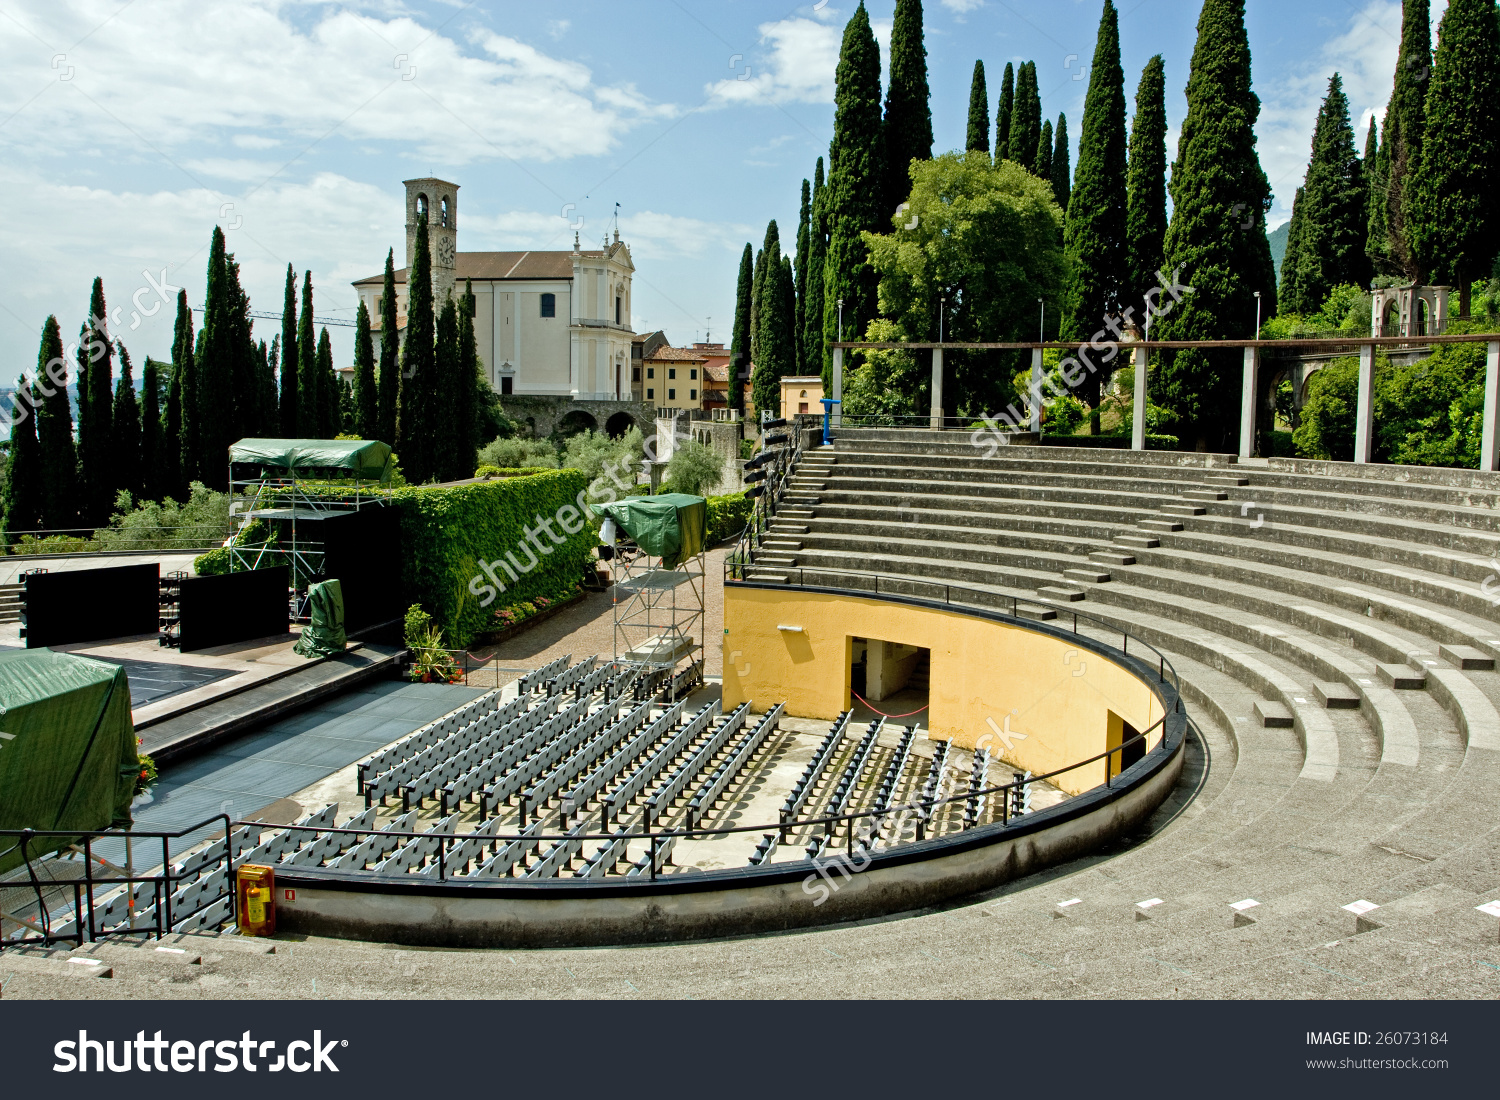 Open Air Theatre Stock Photo 26073184.